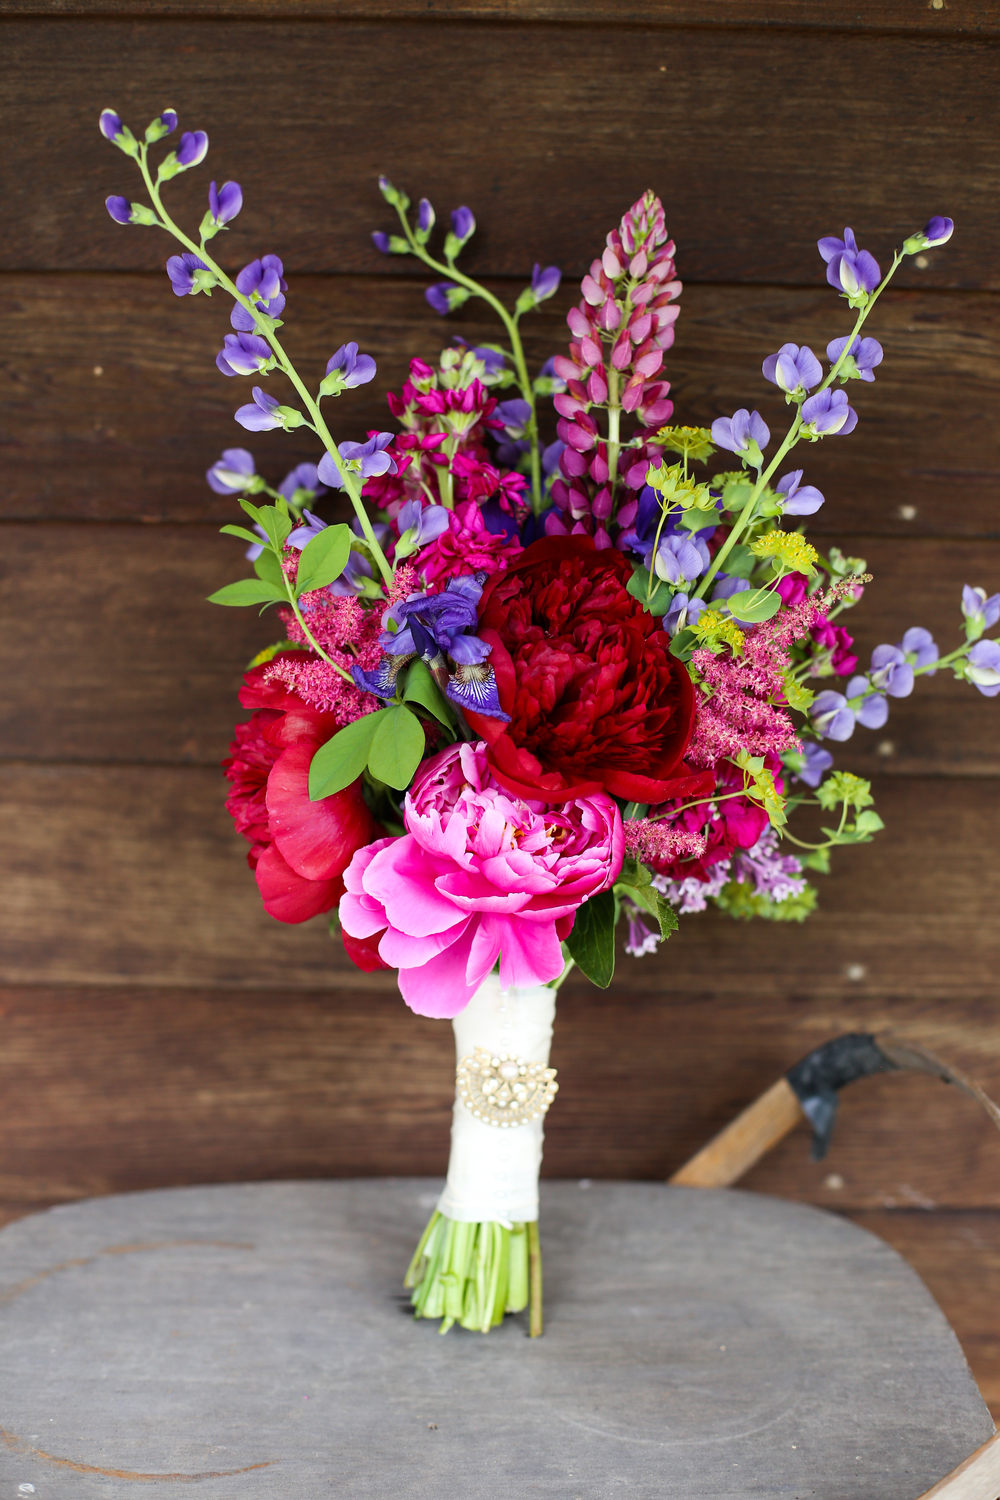 Fake Flowers Vs Real Flowers With Love Amanda From Senecas